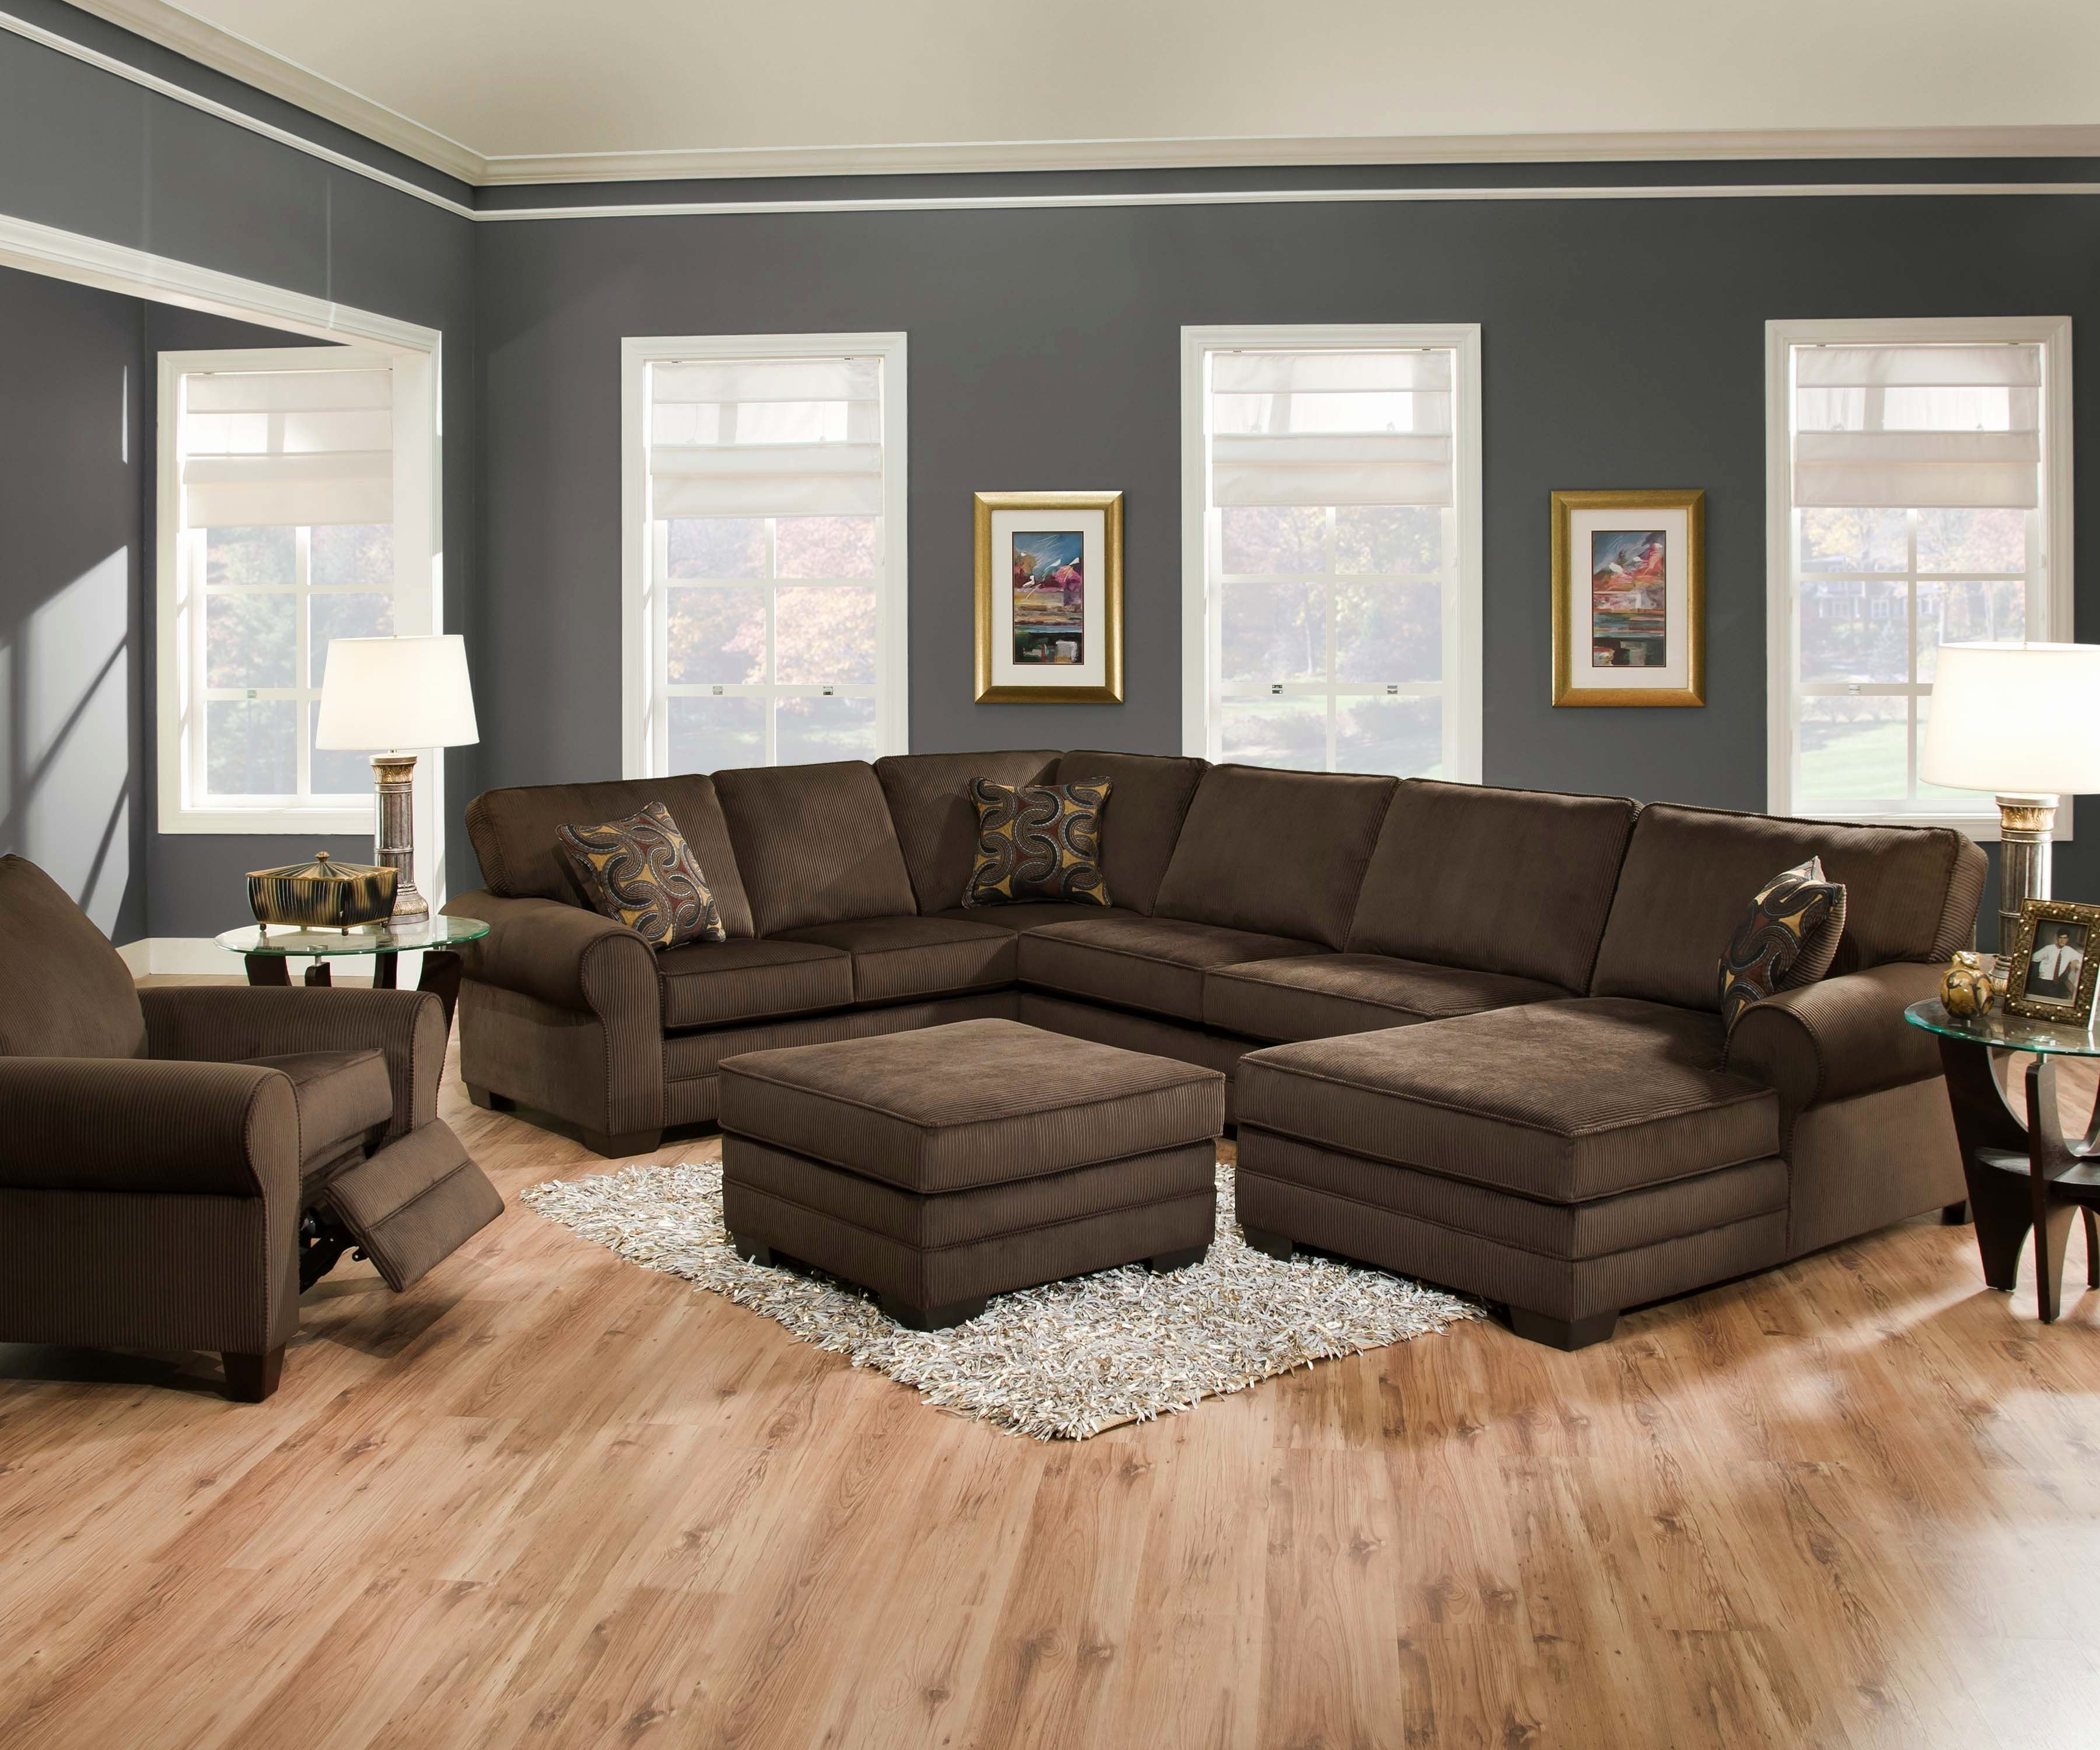 Inspirational Brown and Cream Living Room Designs